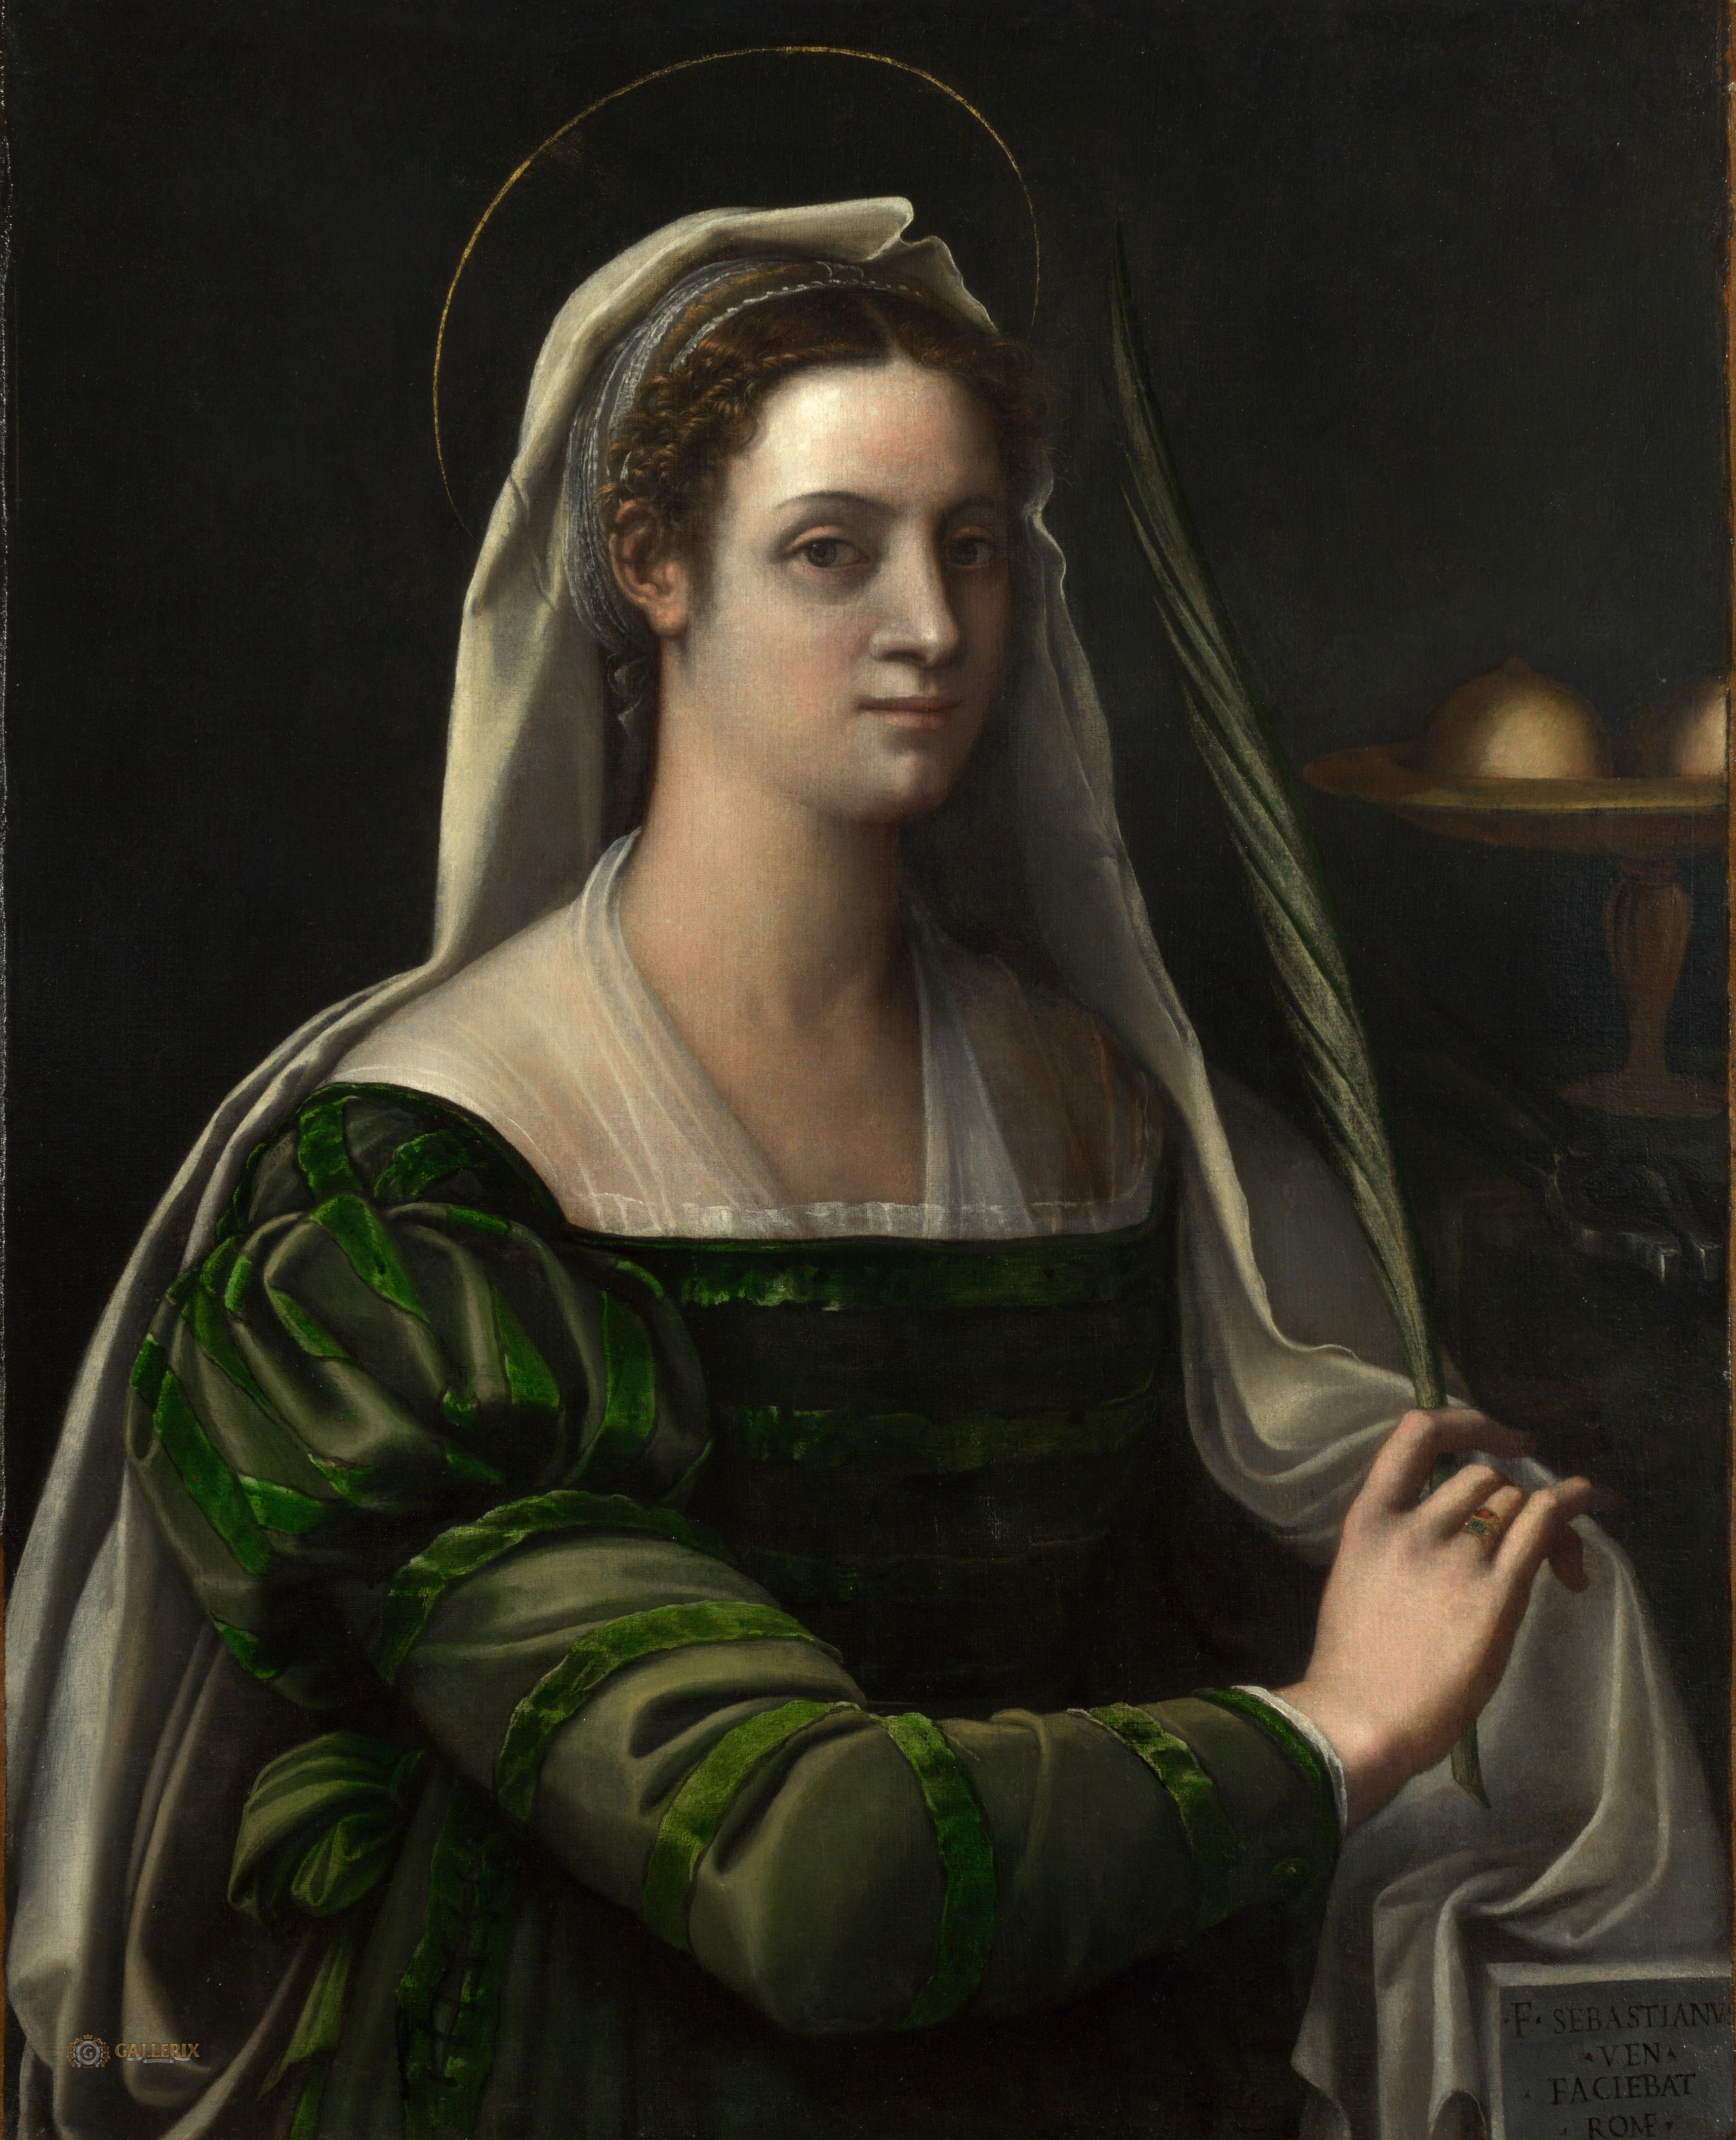 Sebastiano_del_Piombo,_Portrait_of_a_Lady_with_the_Attributes_of_Saint_Agatha.jpg